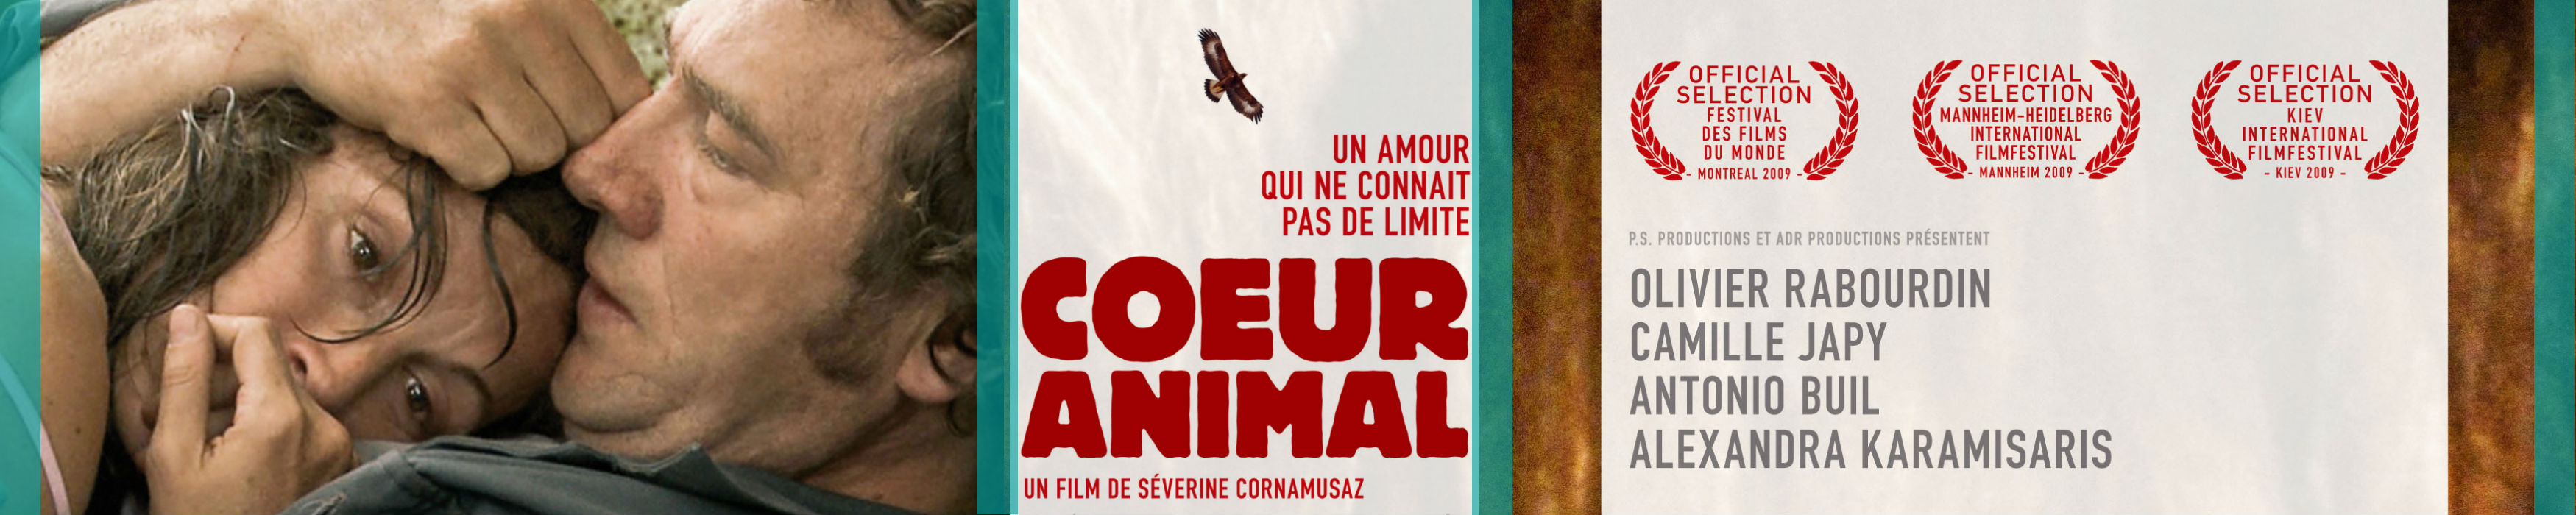 Banner du film Coeur Animal